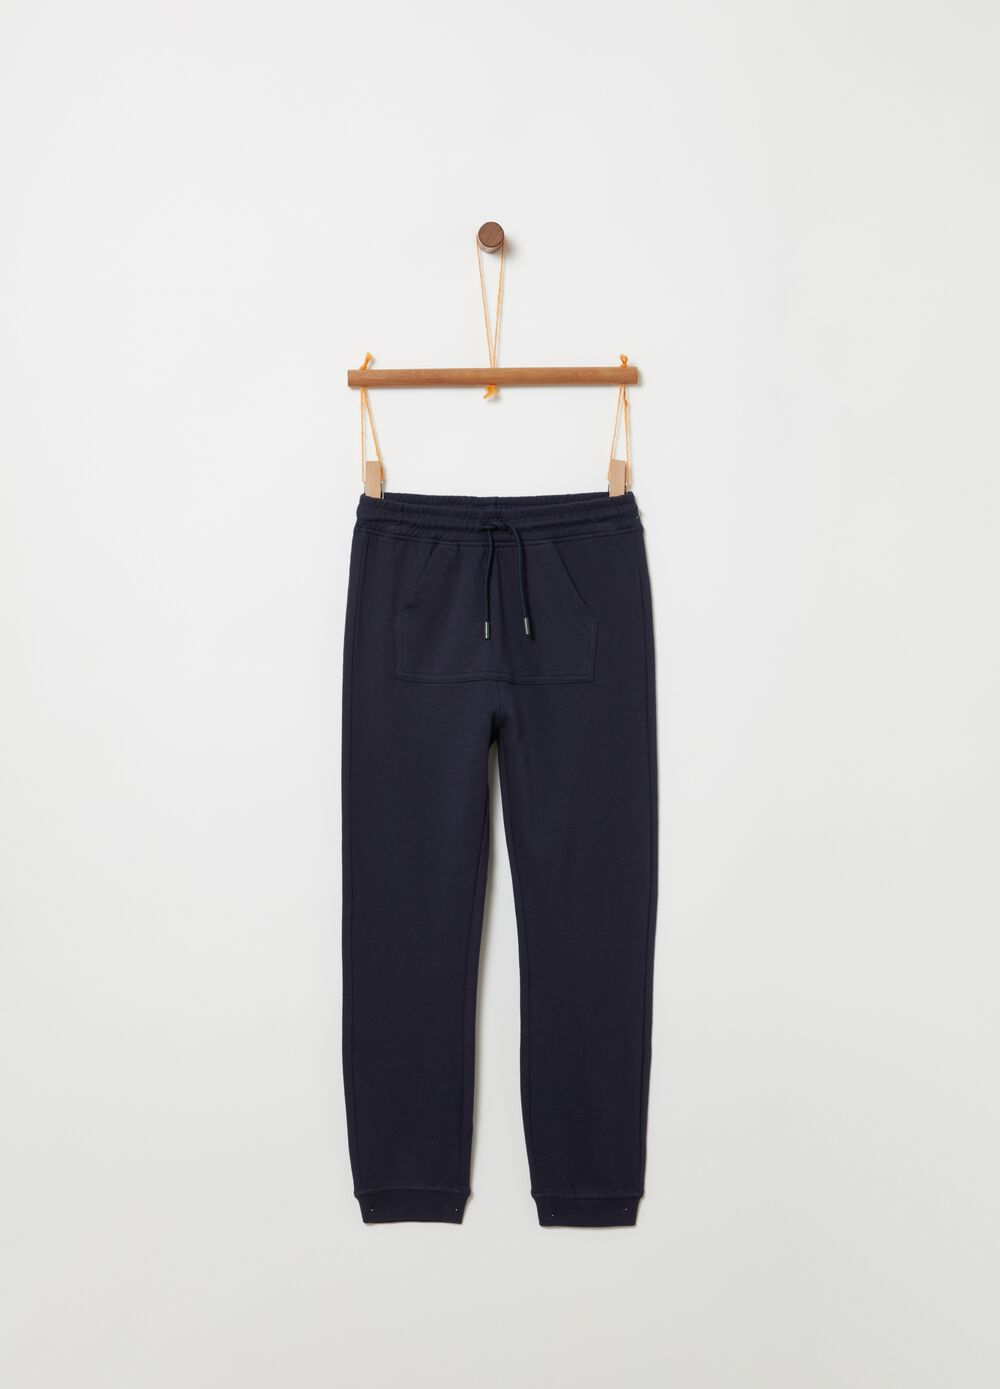 Organic cotton trousers with pouch pocket